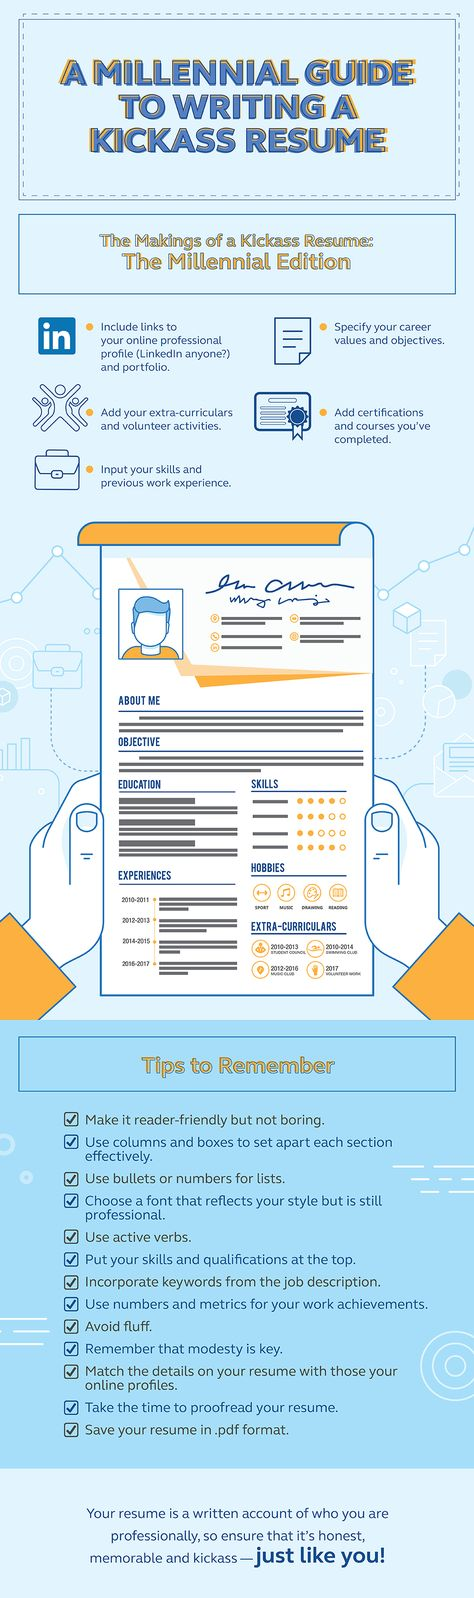 A Millennial Guide To Writing A Kickass Resume Go! - Globe - kick ass resume